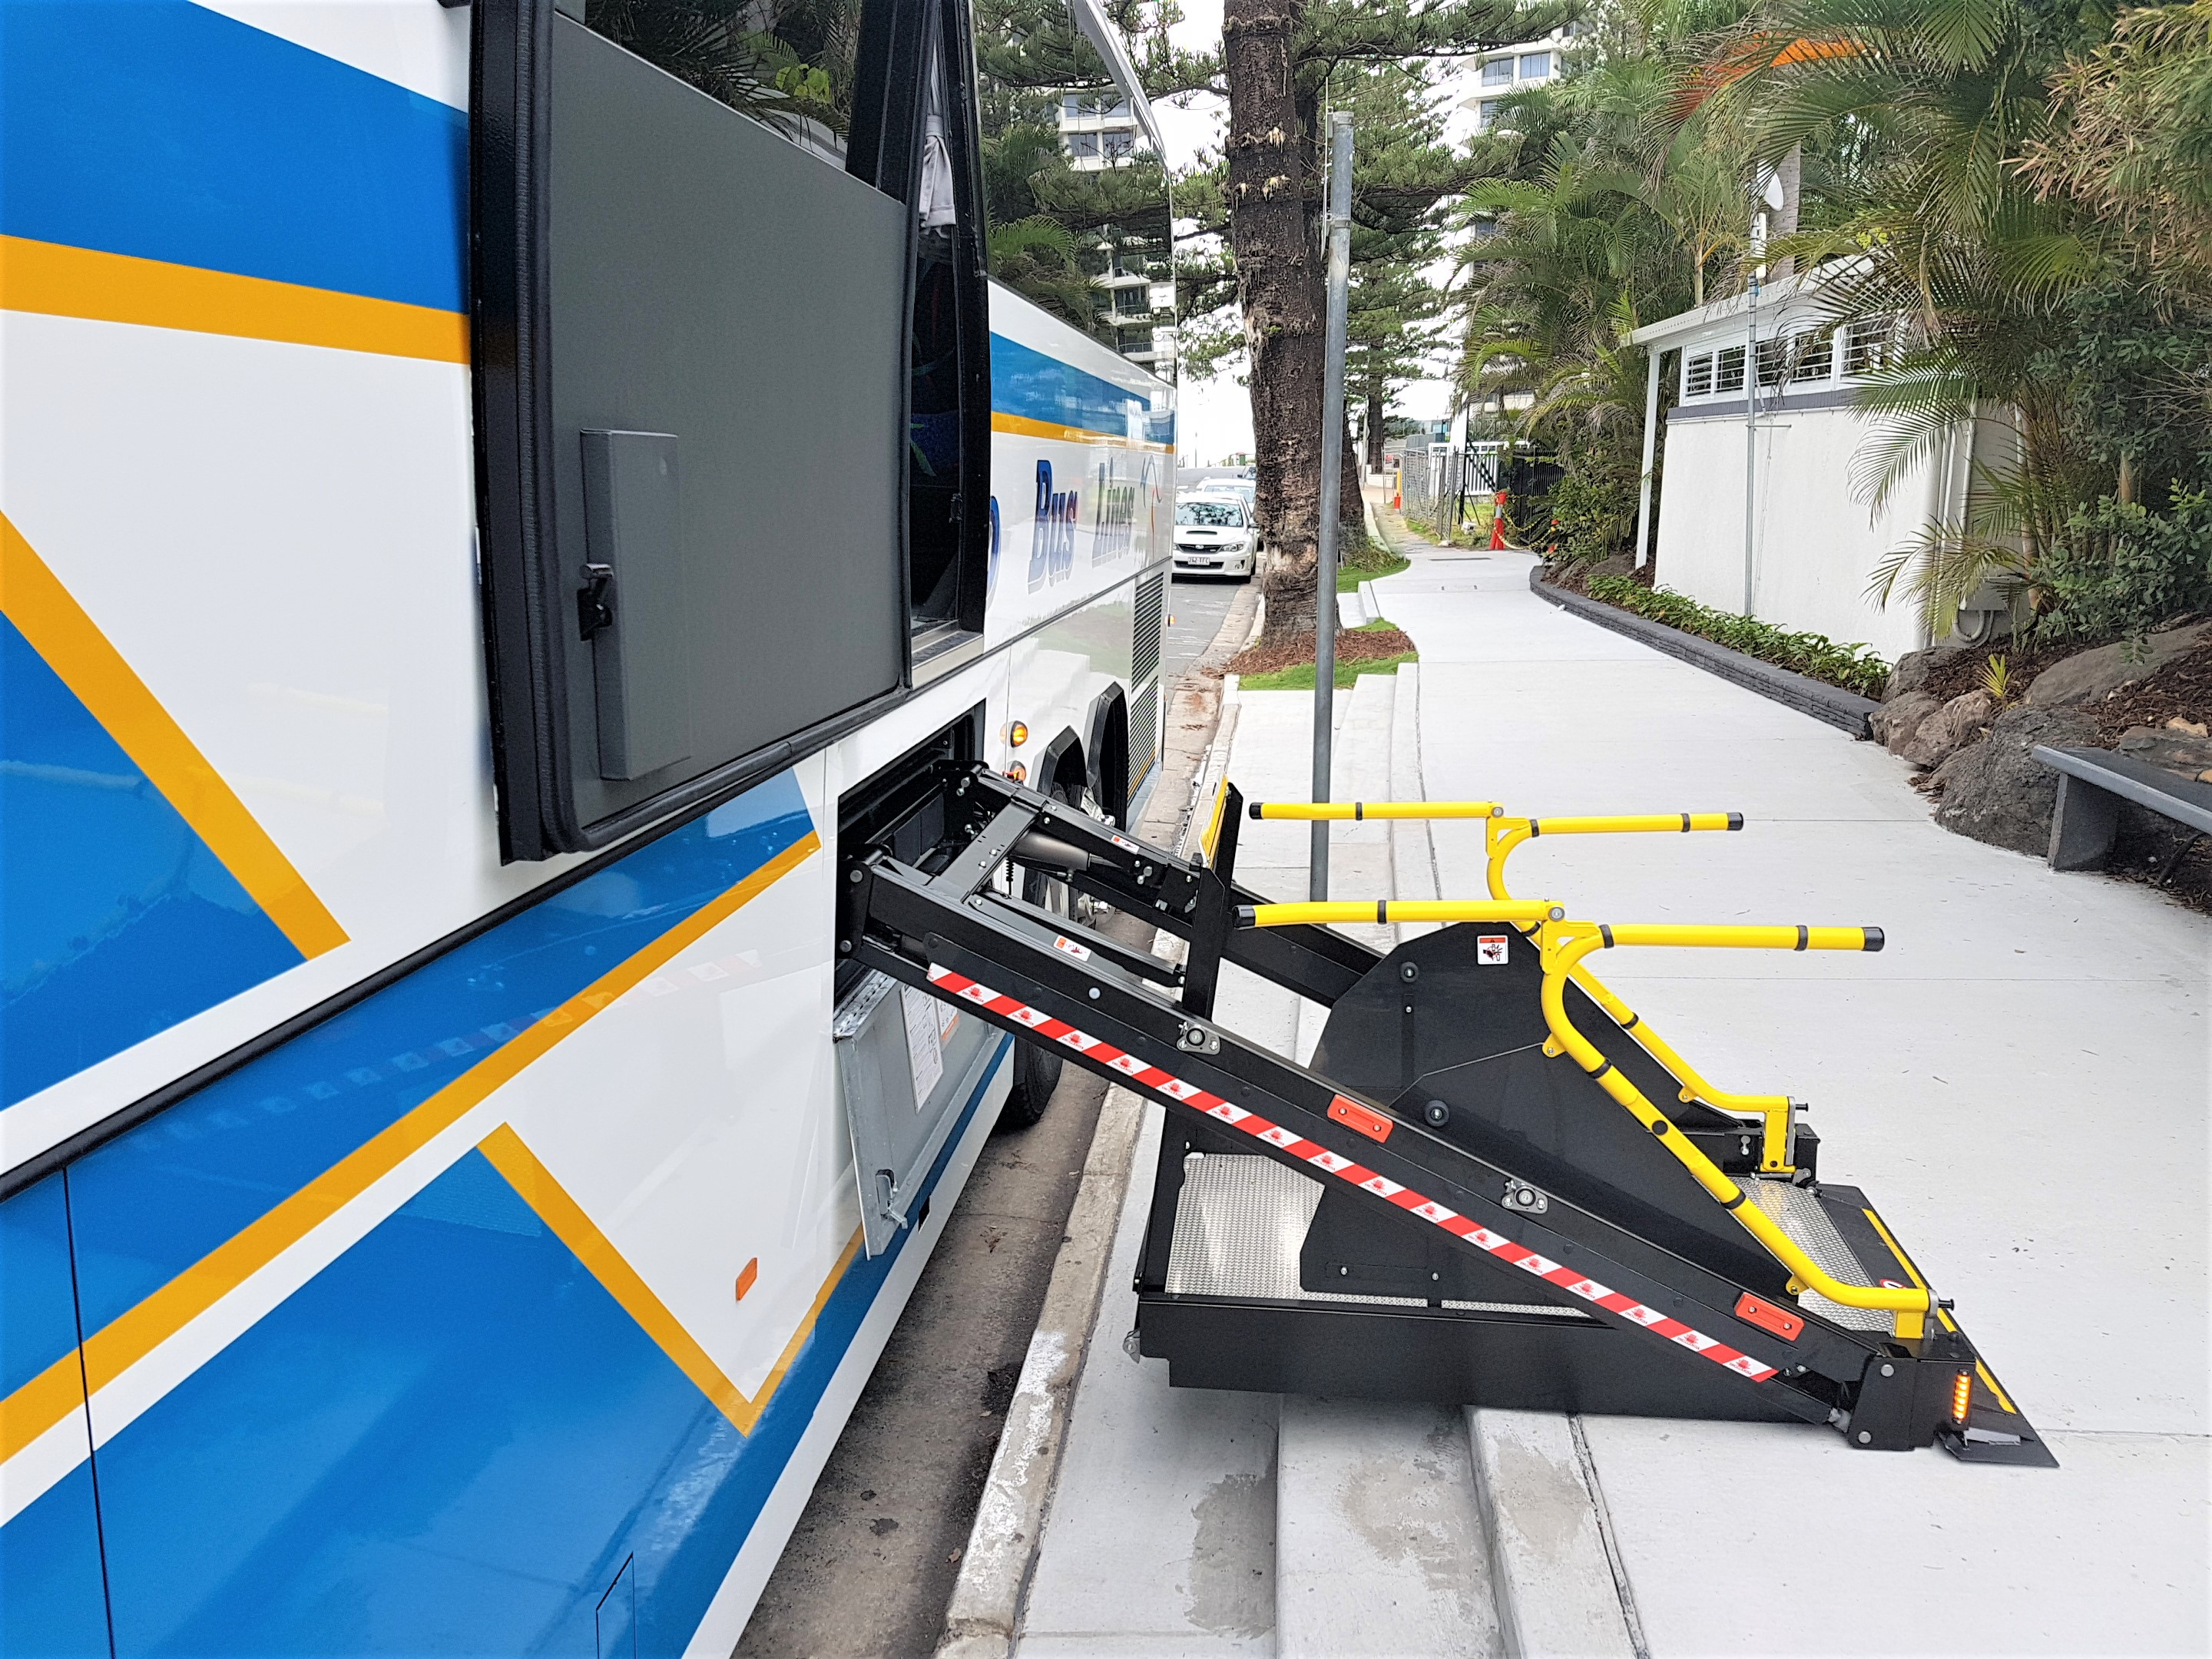 Accessibility Transport Kangaroo Bus Lines